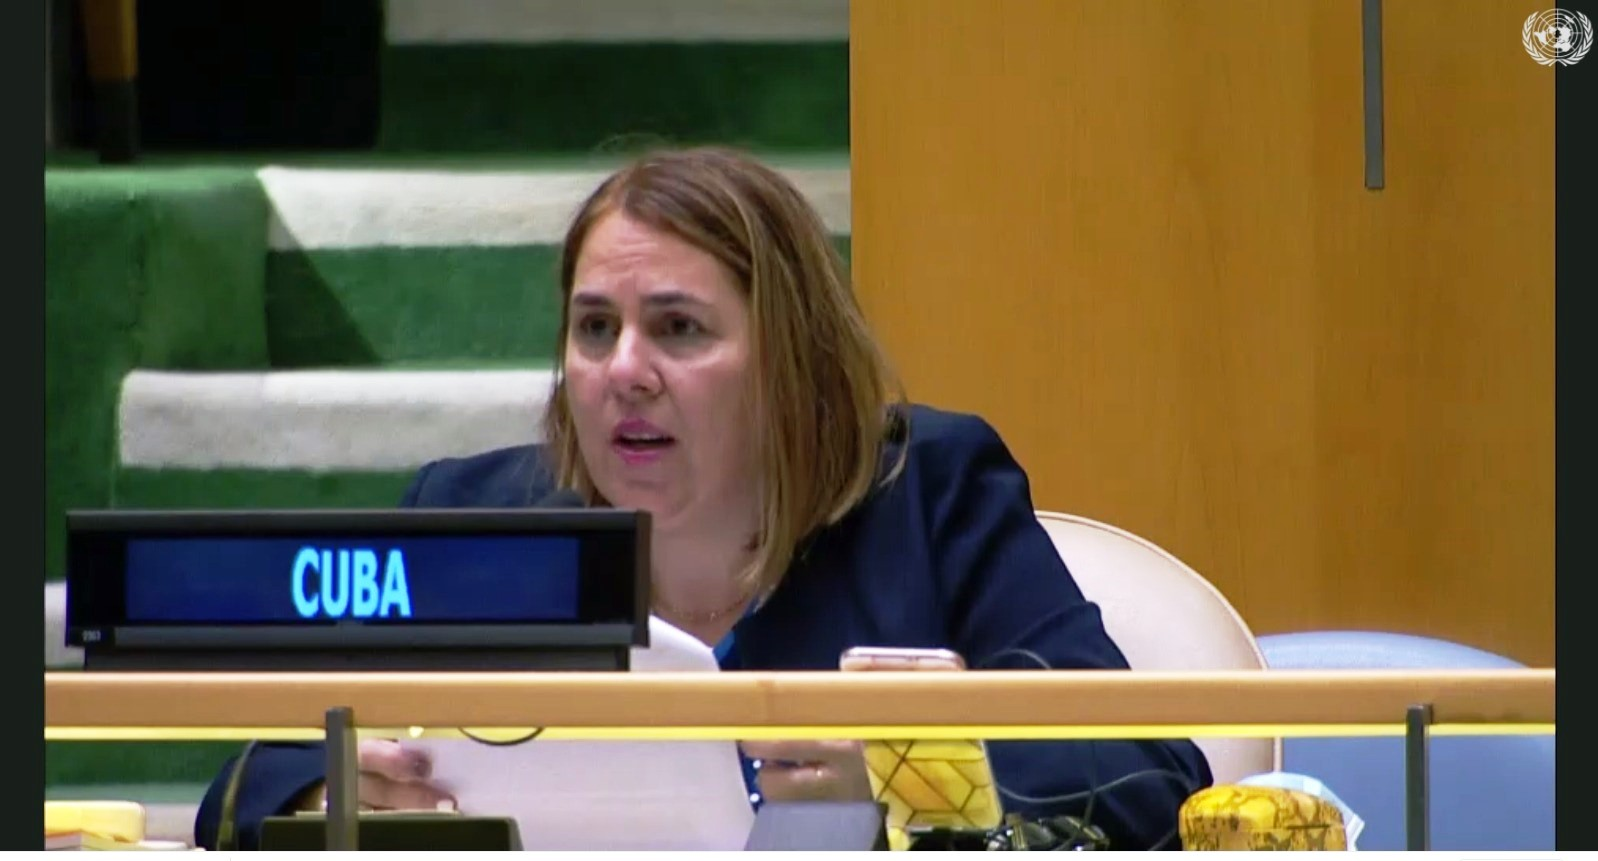 Ana Silvia Rodriguez Abascal, the Cuban representative to the United Nations